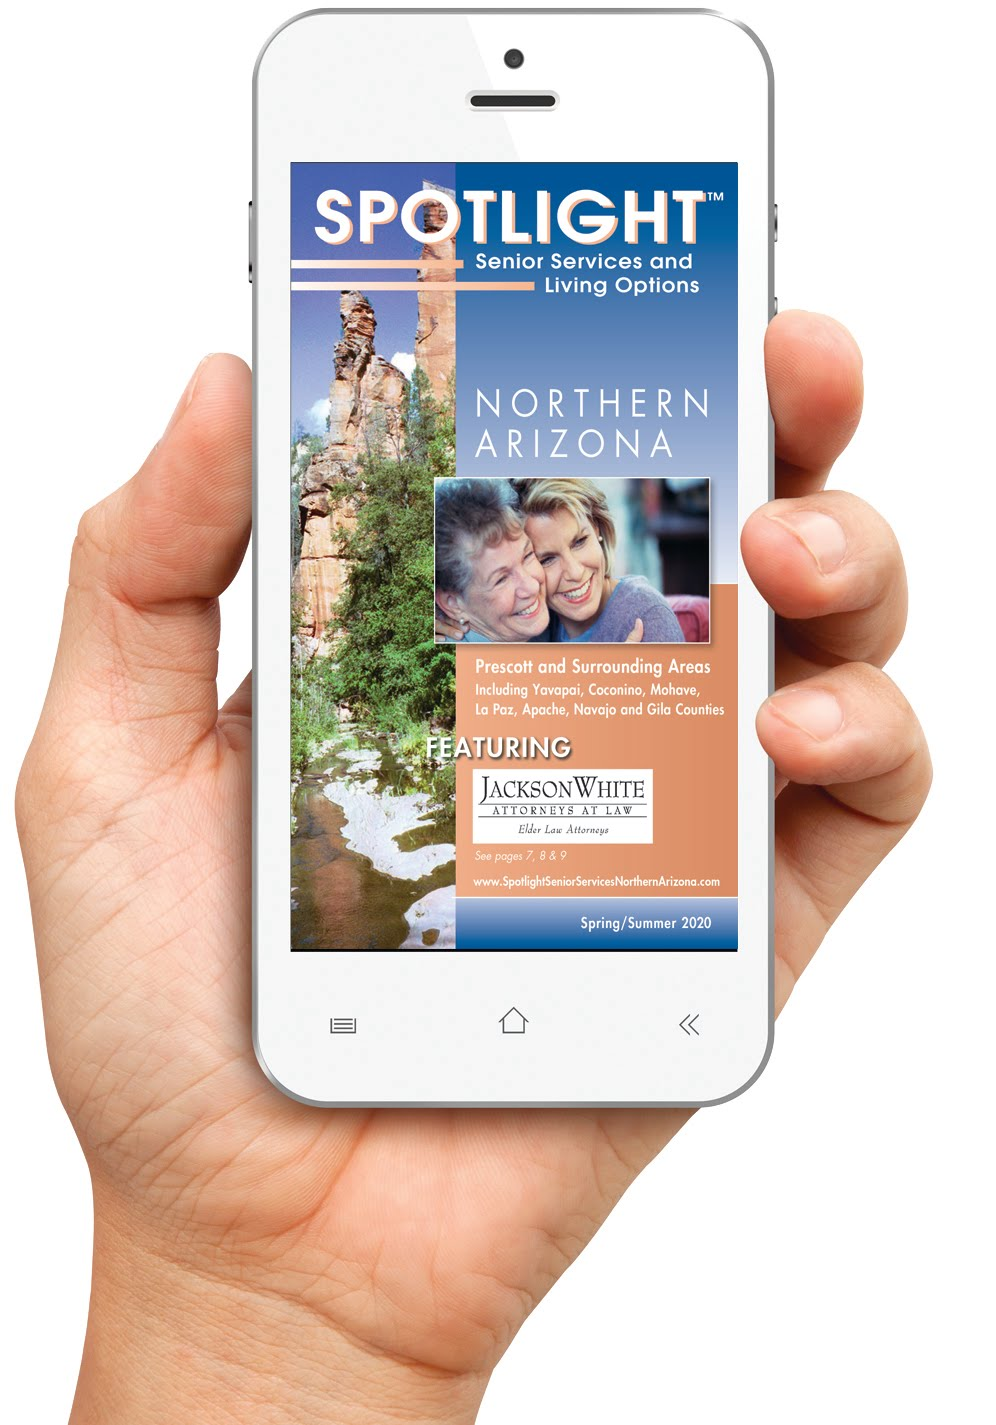 SPOTLIGHT Northern Arizona Mobile App